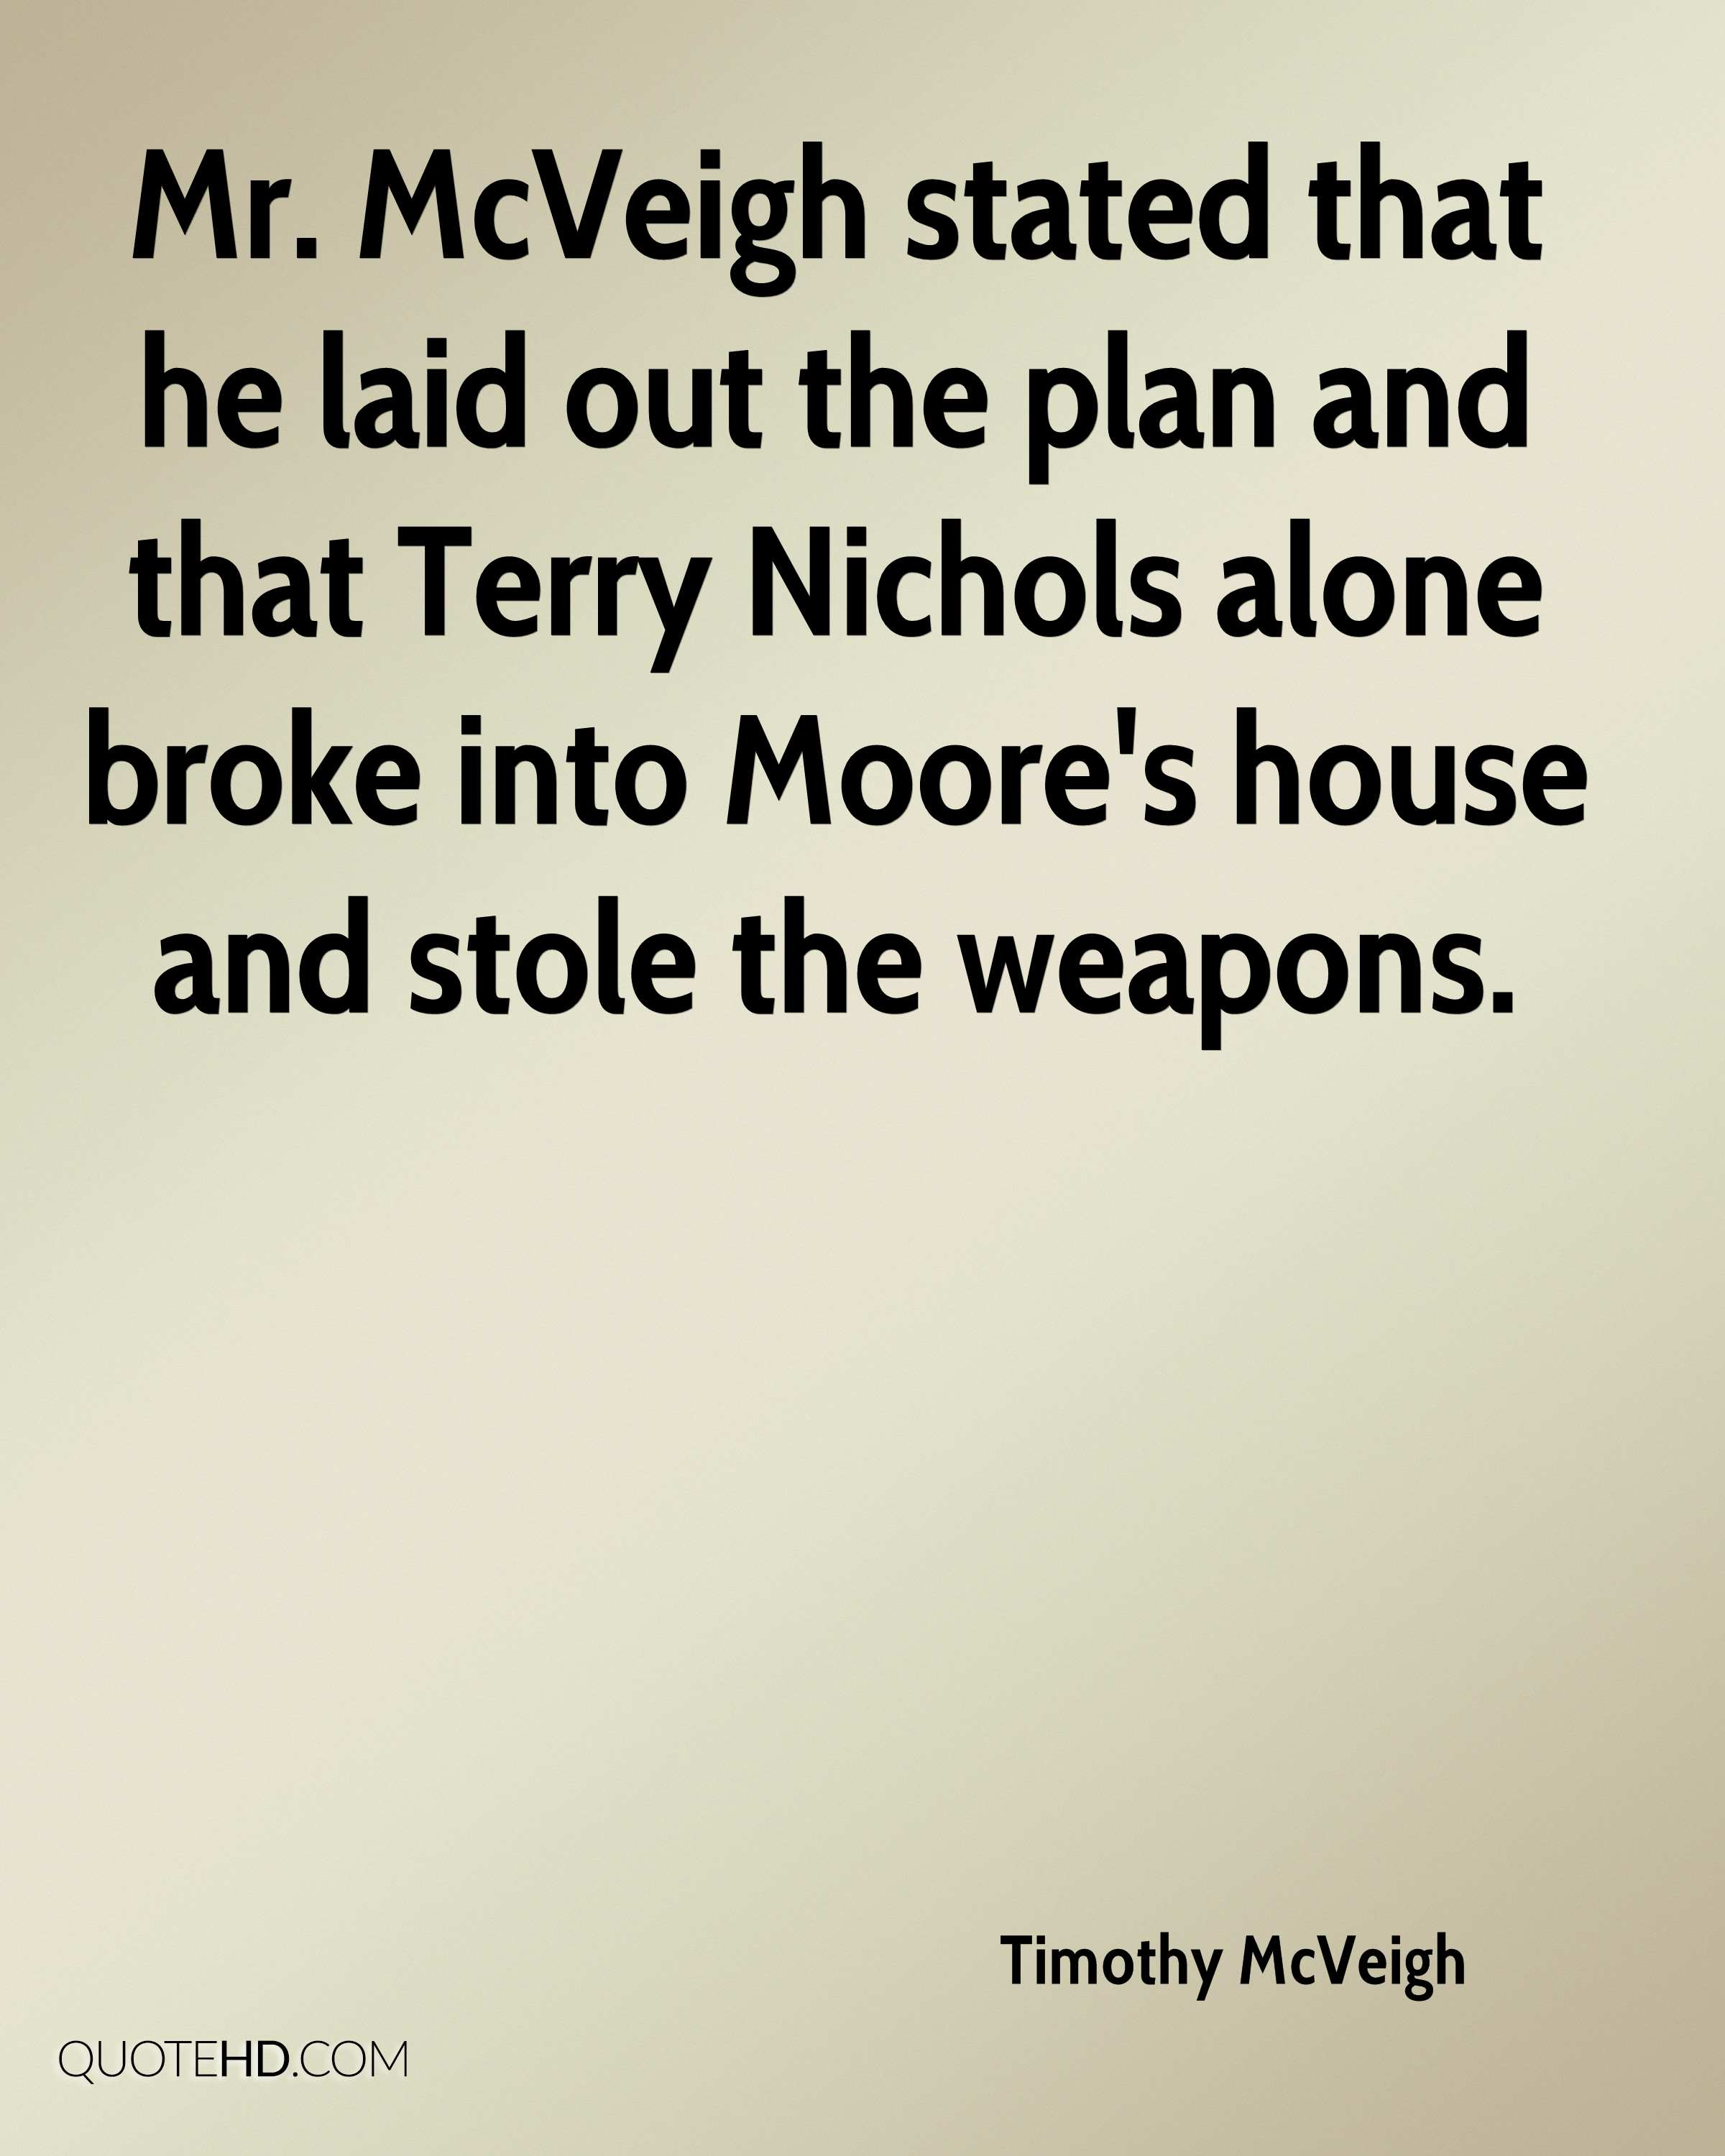 Mr. McVeigh stated that he laid out the plan and that Terry Nichols alone broke into Moore's house and stole the weapons.